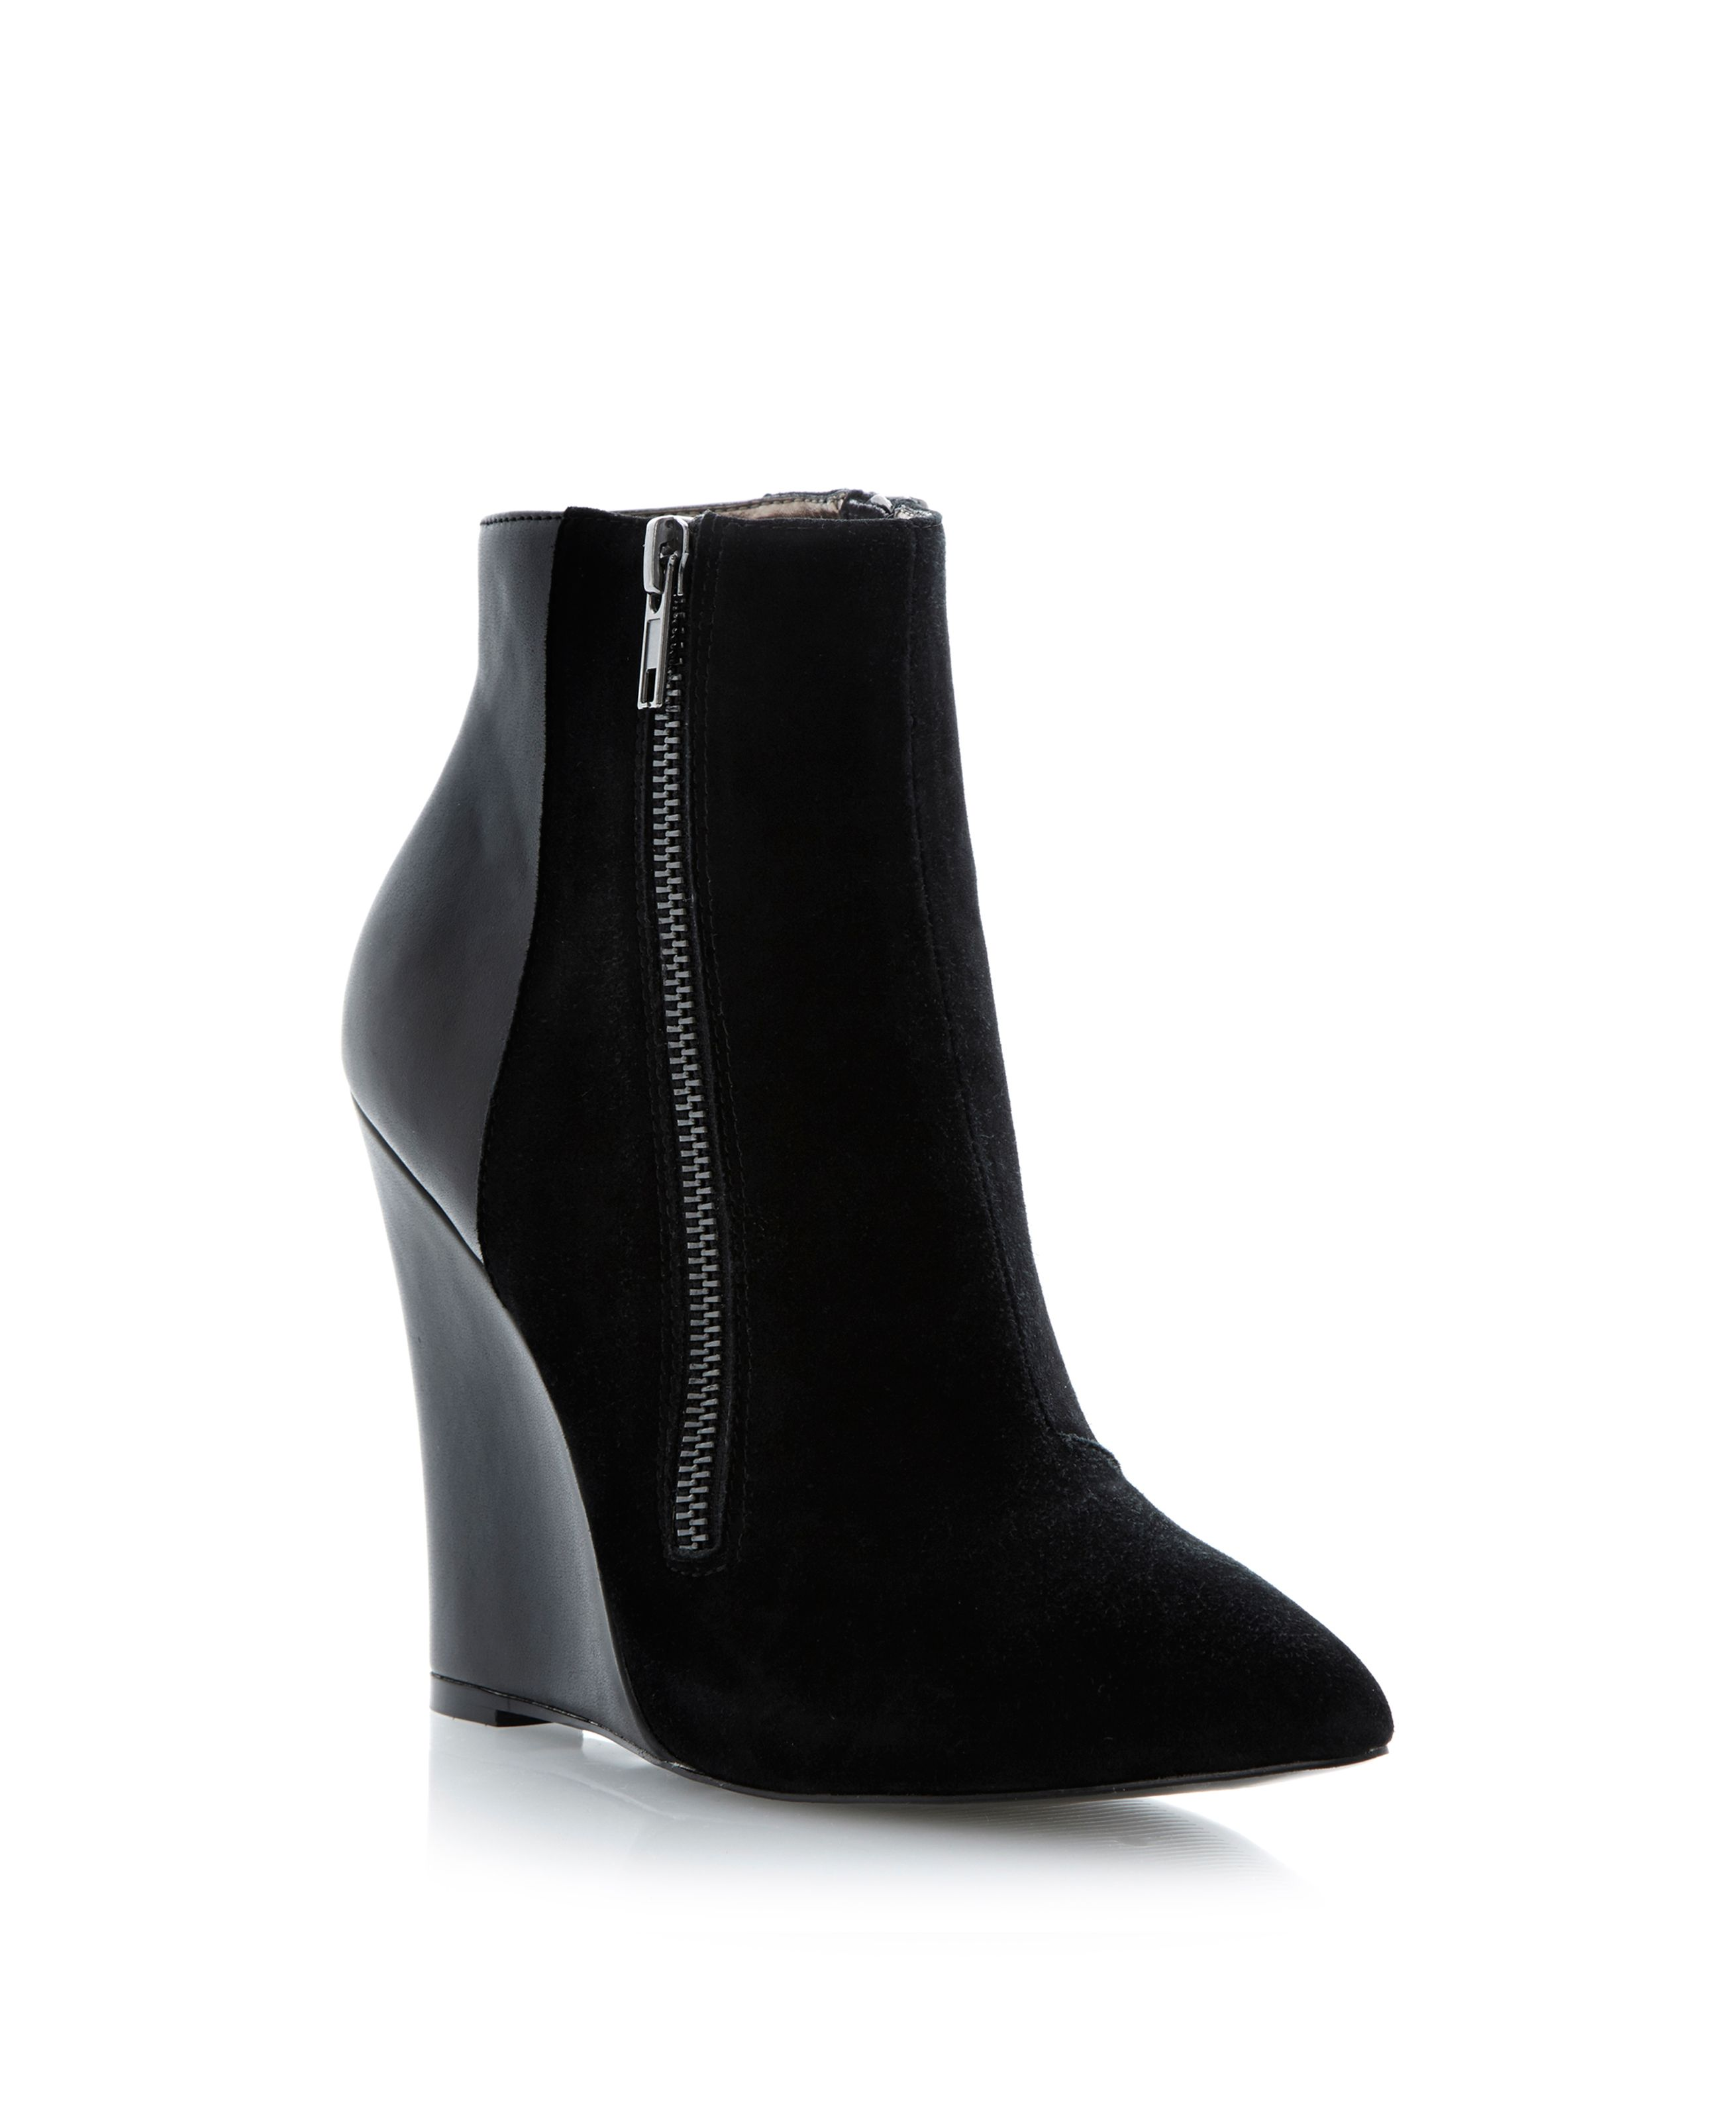 Daaring zip detail pointed toe wedge ankle boots